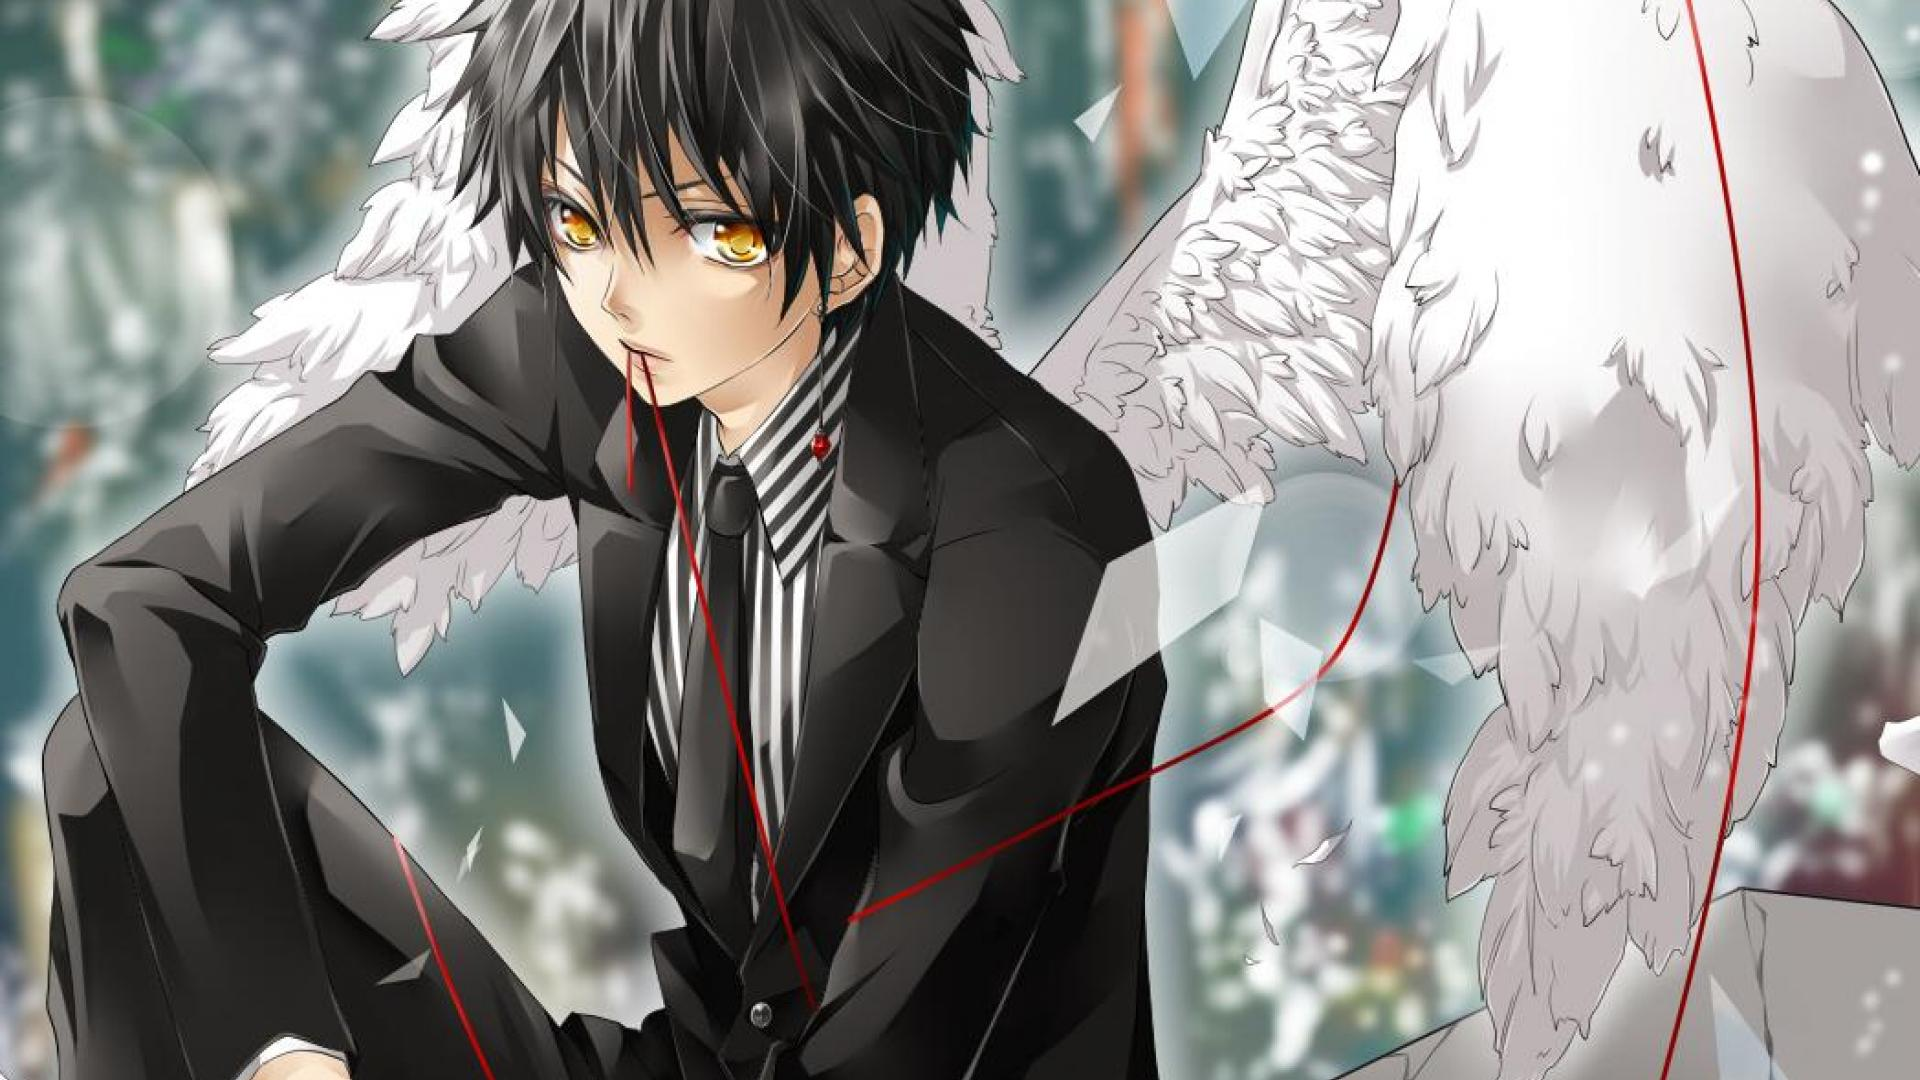 Cute Anime Boy Wallpapers - Wallpaper Cave